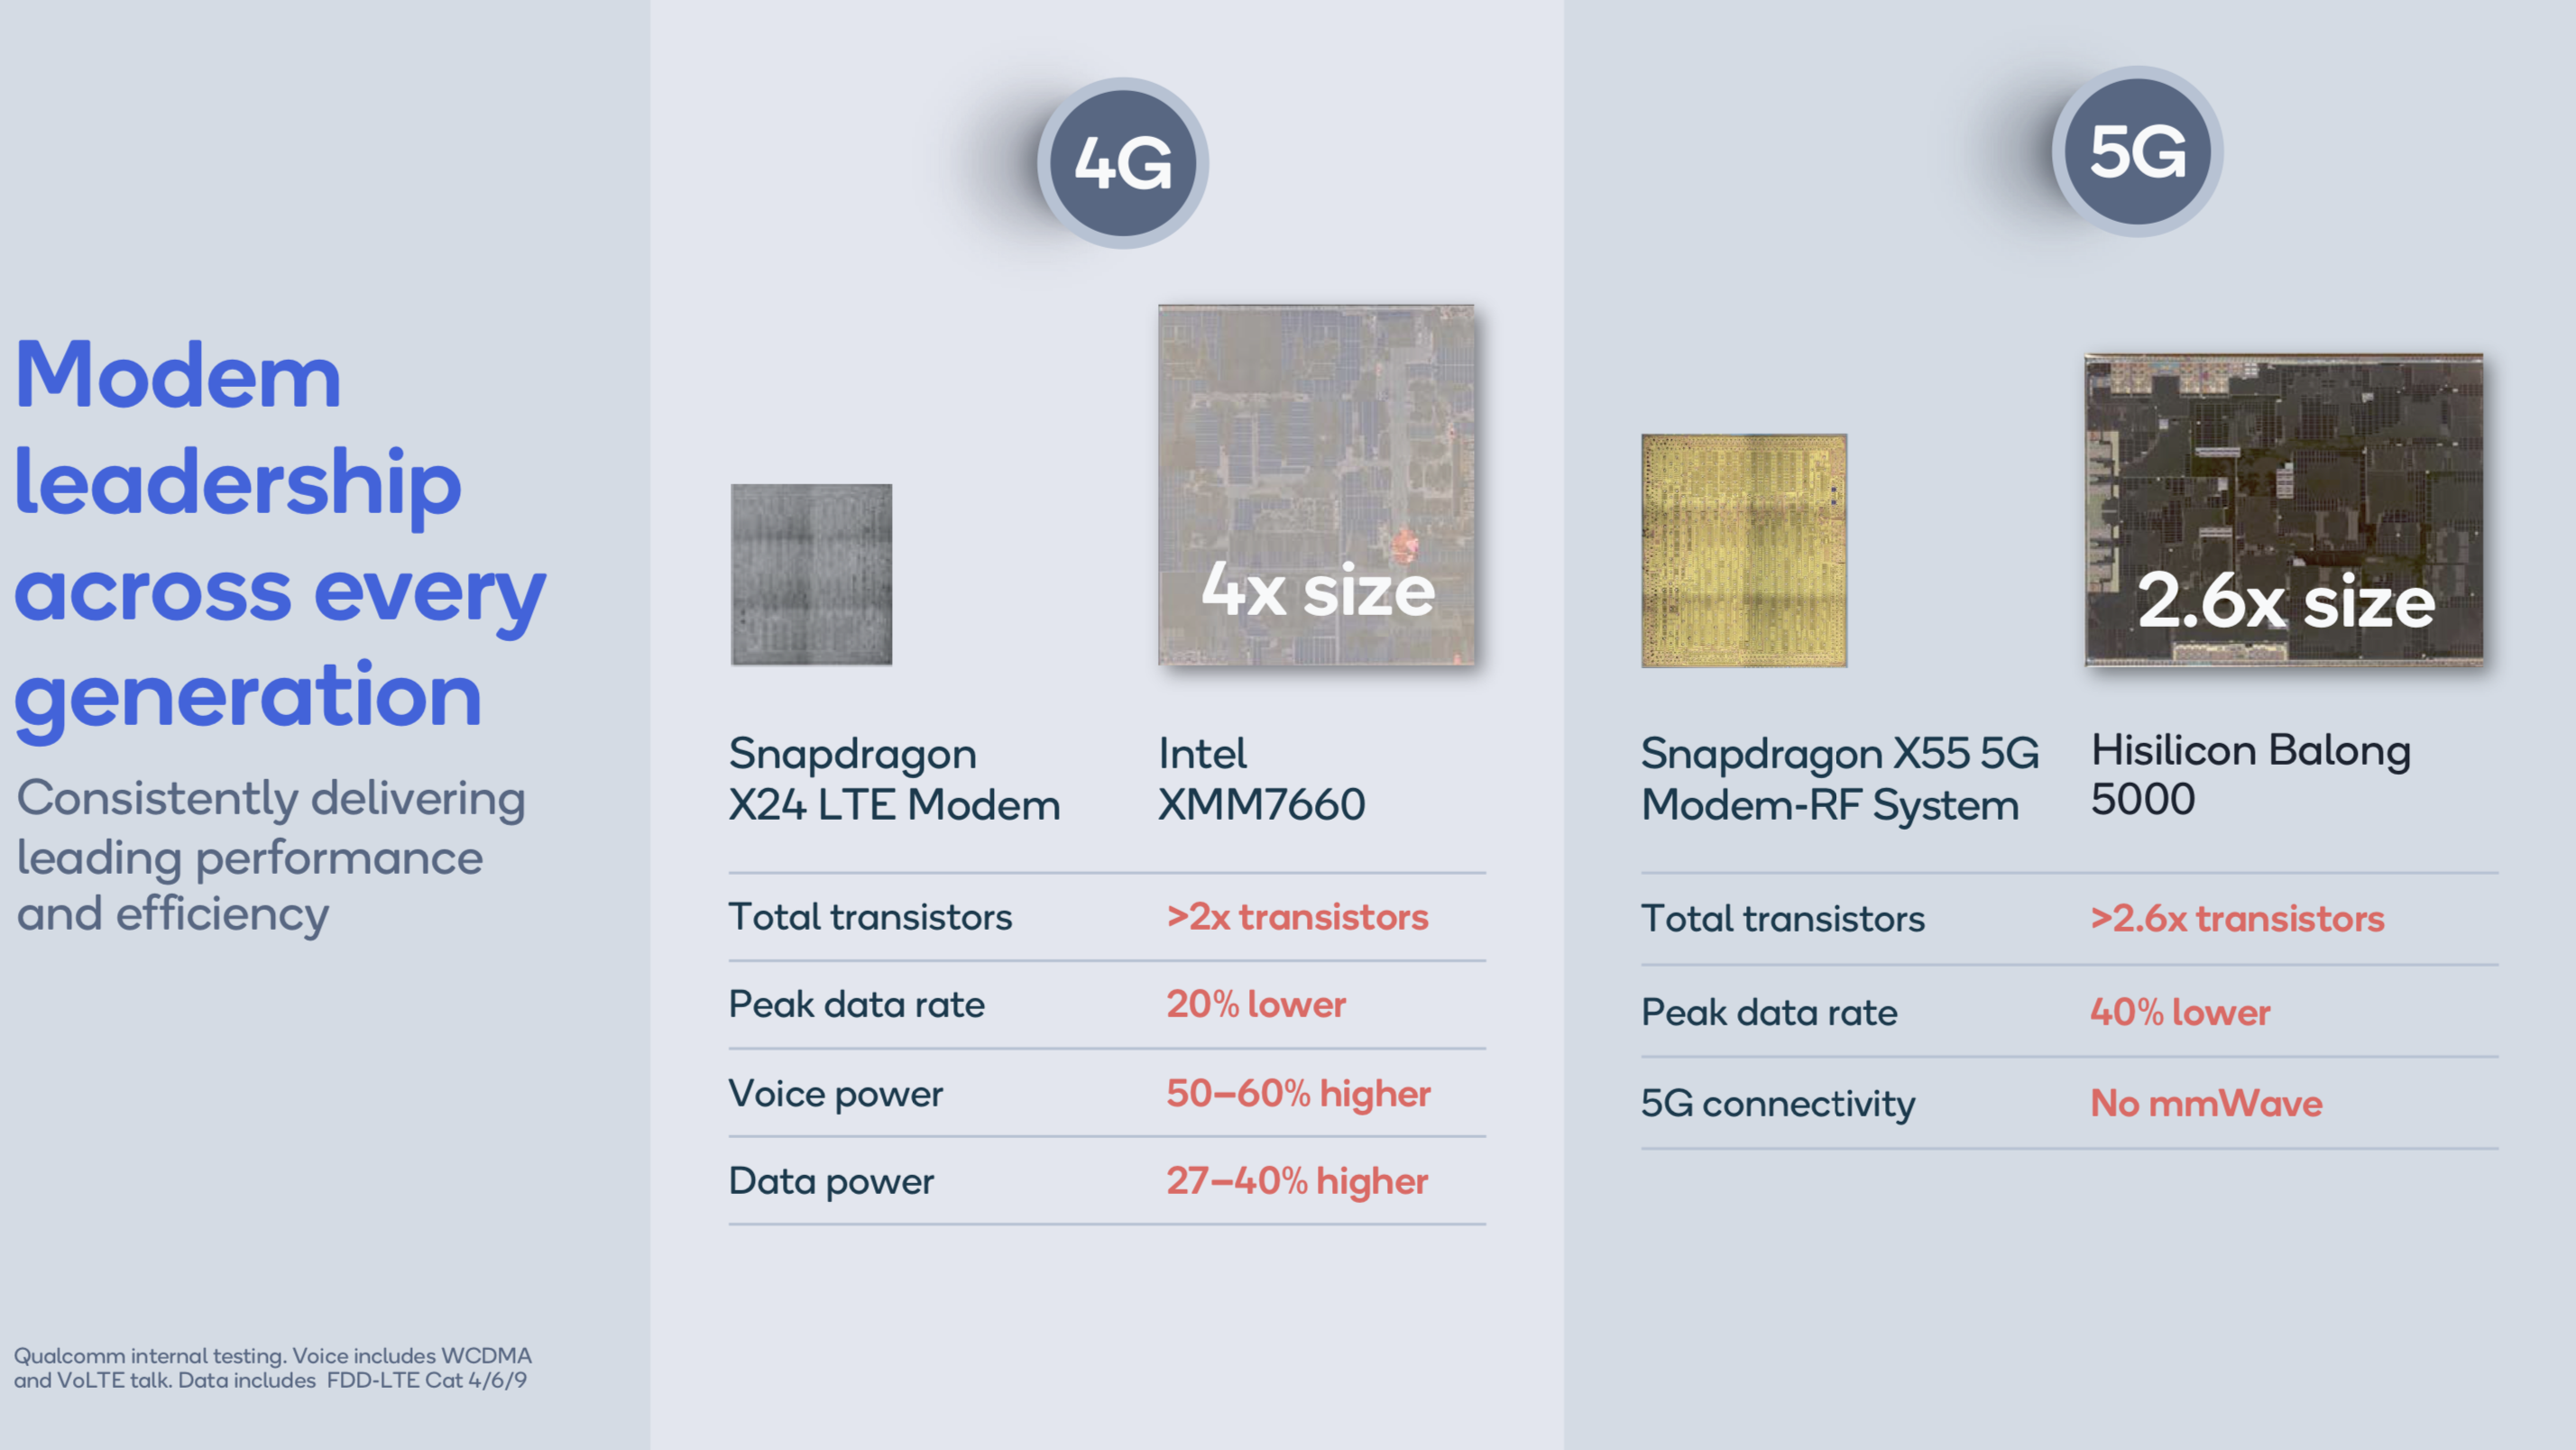 Qualcomm. Intel, Huawei 4G and 5G modems